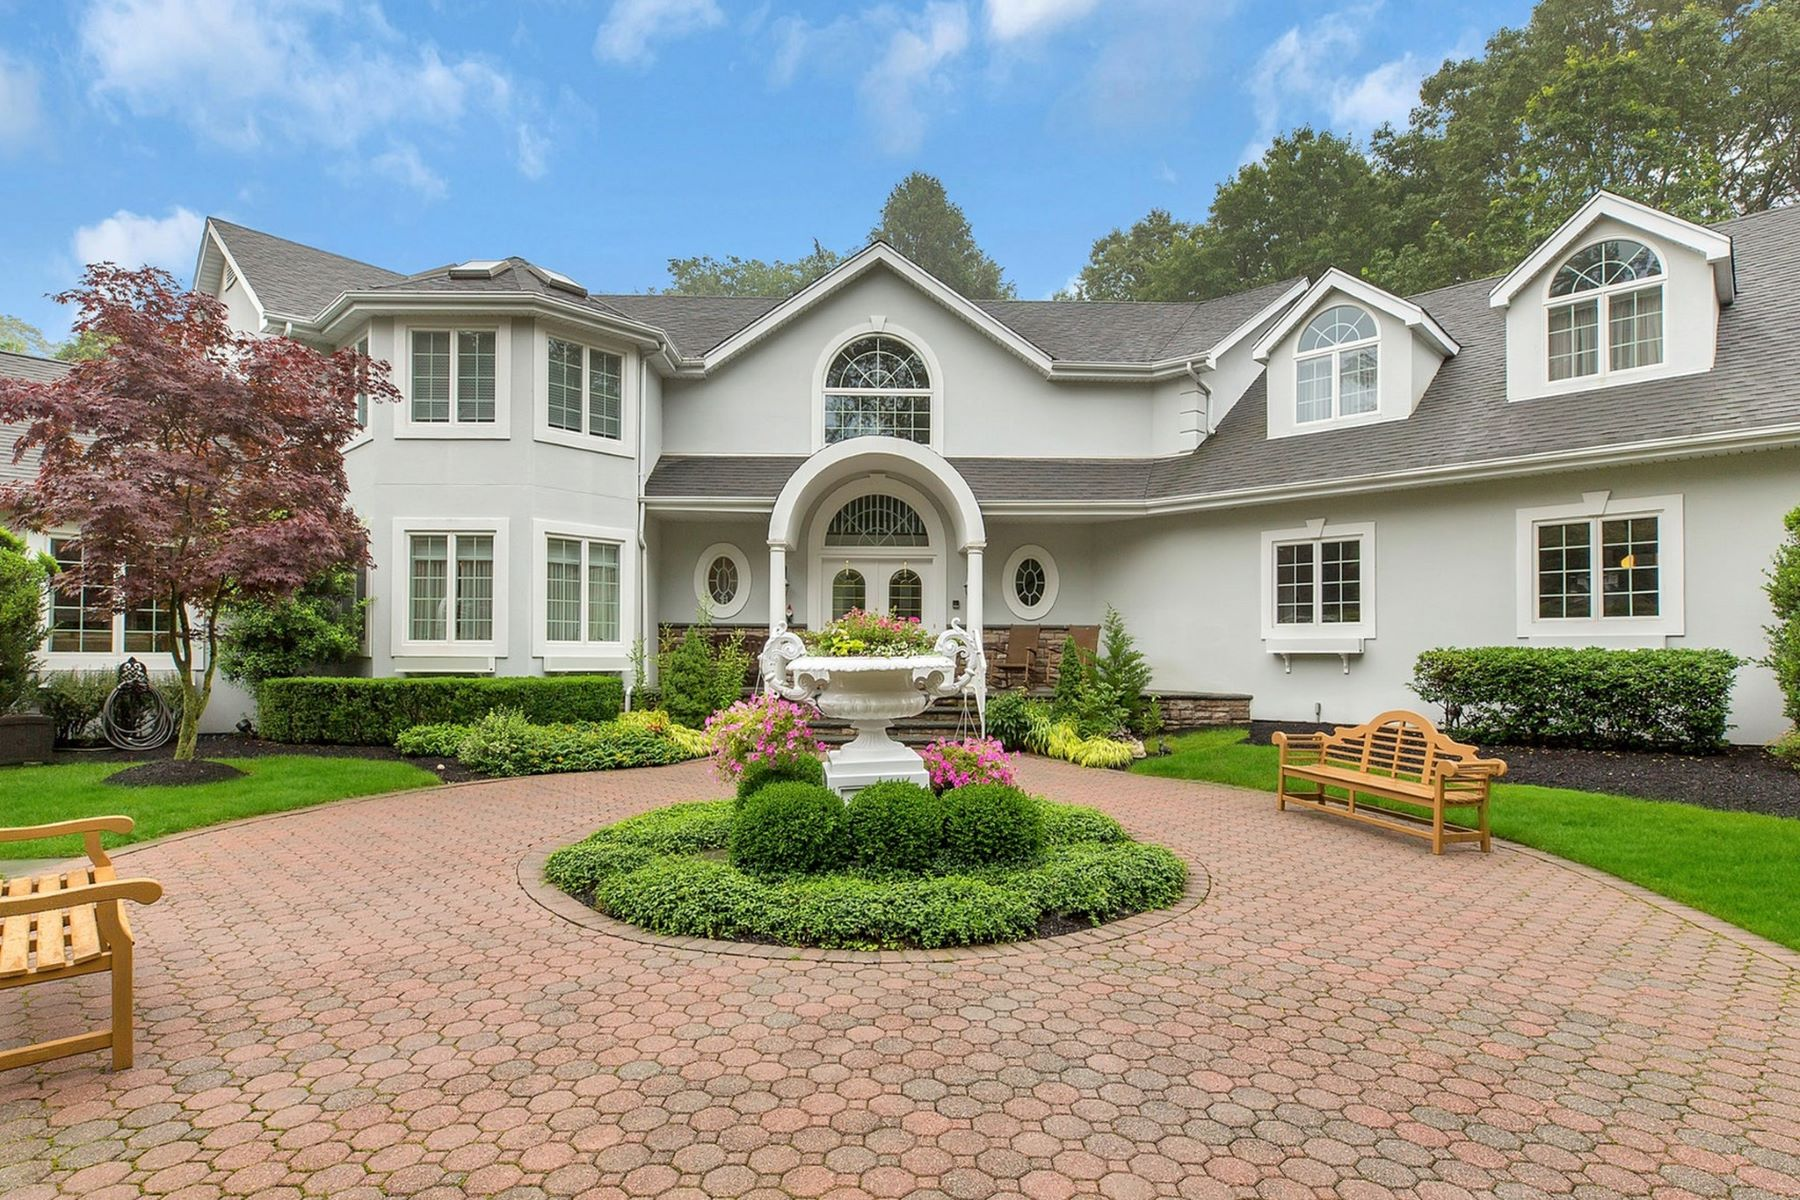 Single Family Homes for Sale at Dix Hills 272 Half Hollow Rd Dix Hills, New York 11746 United States